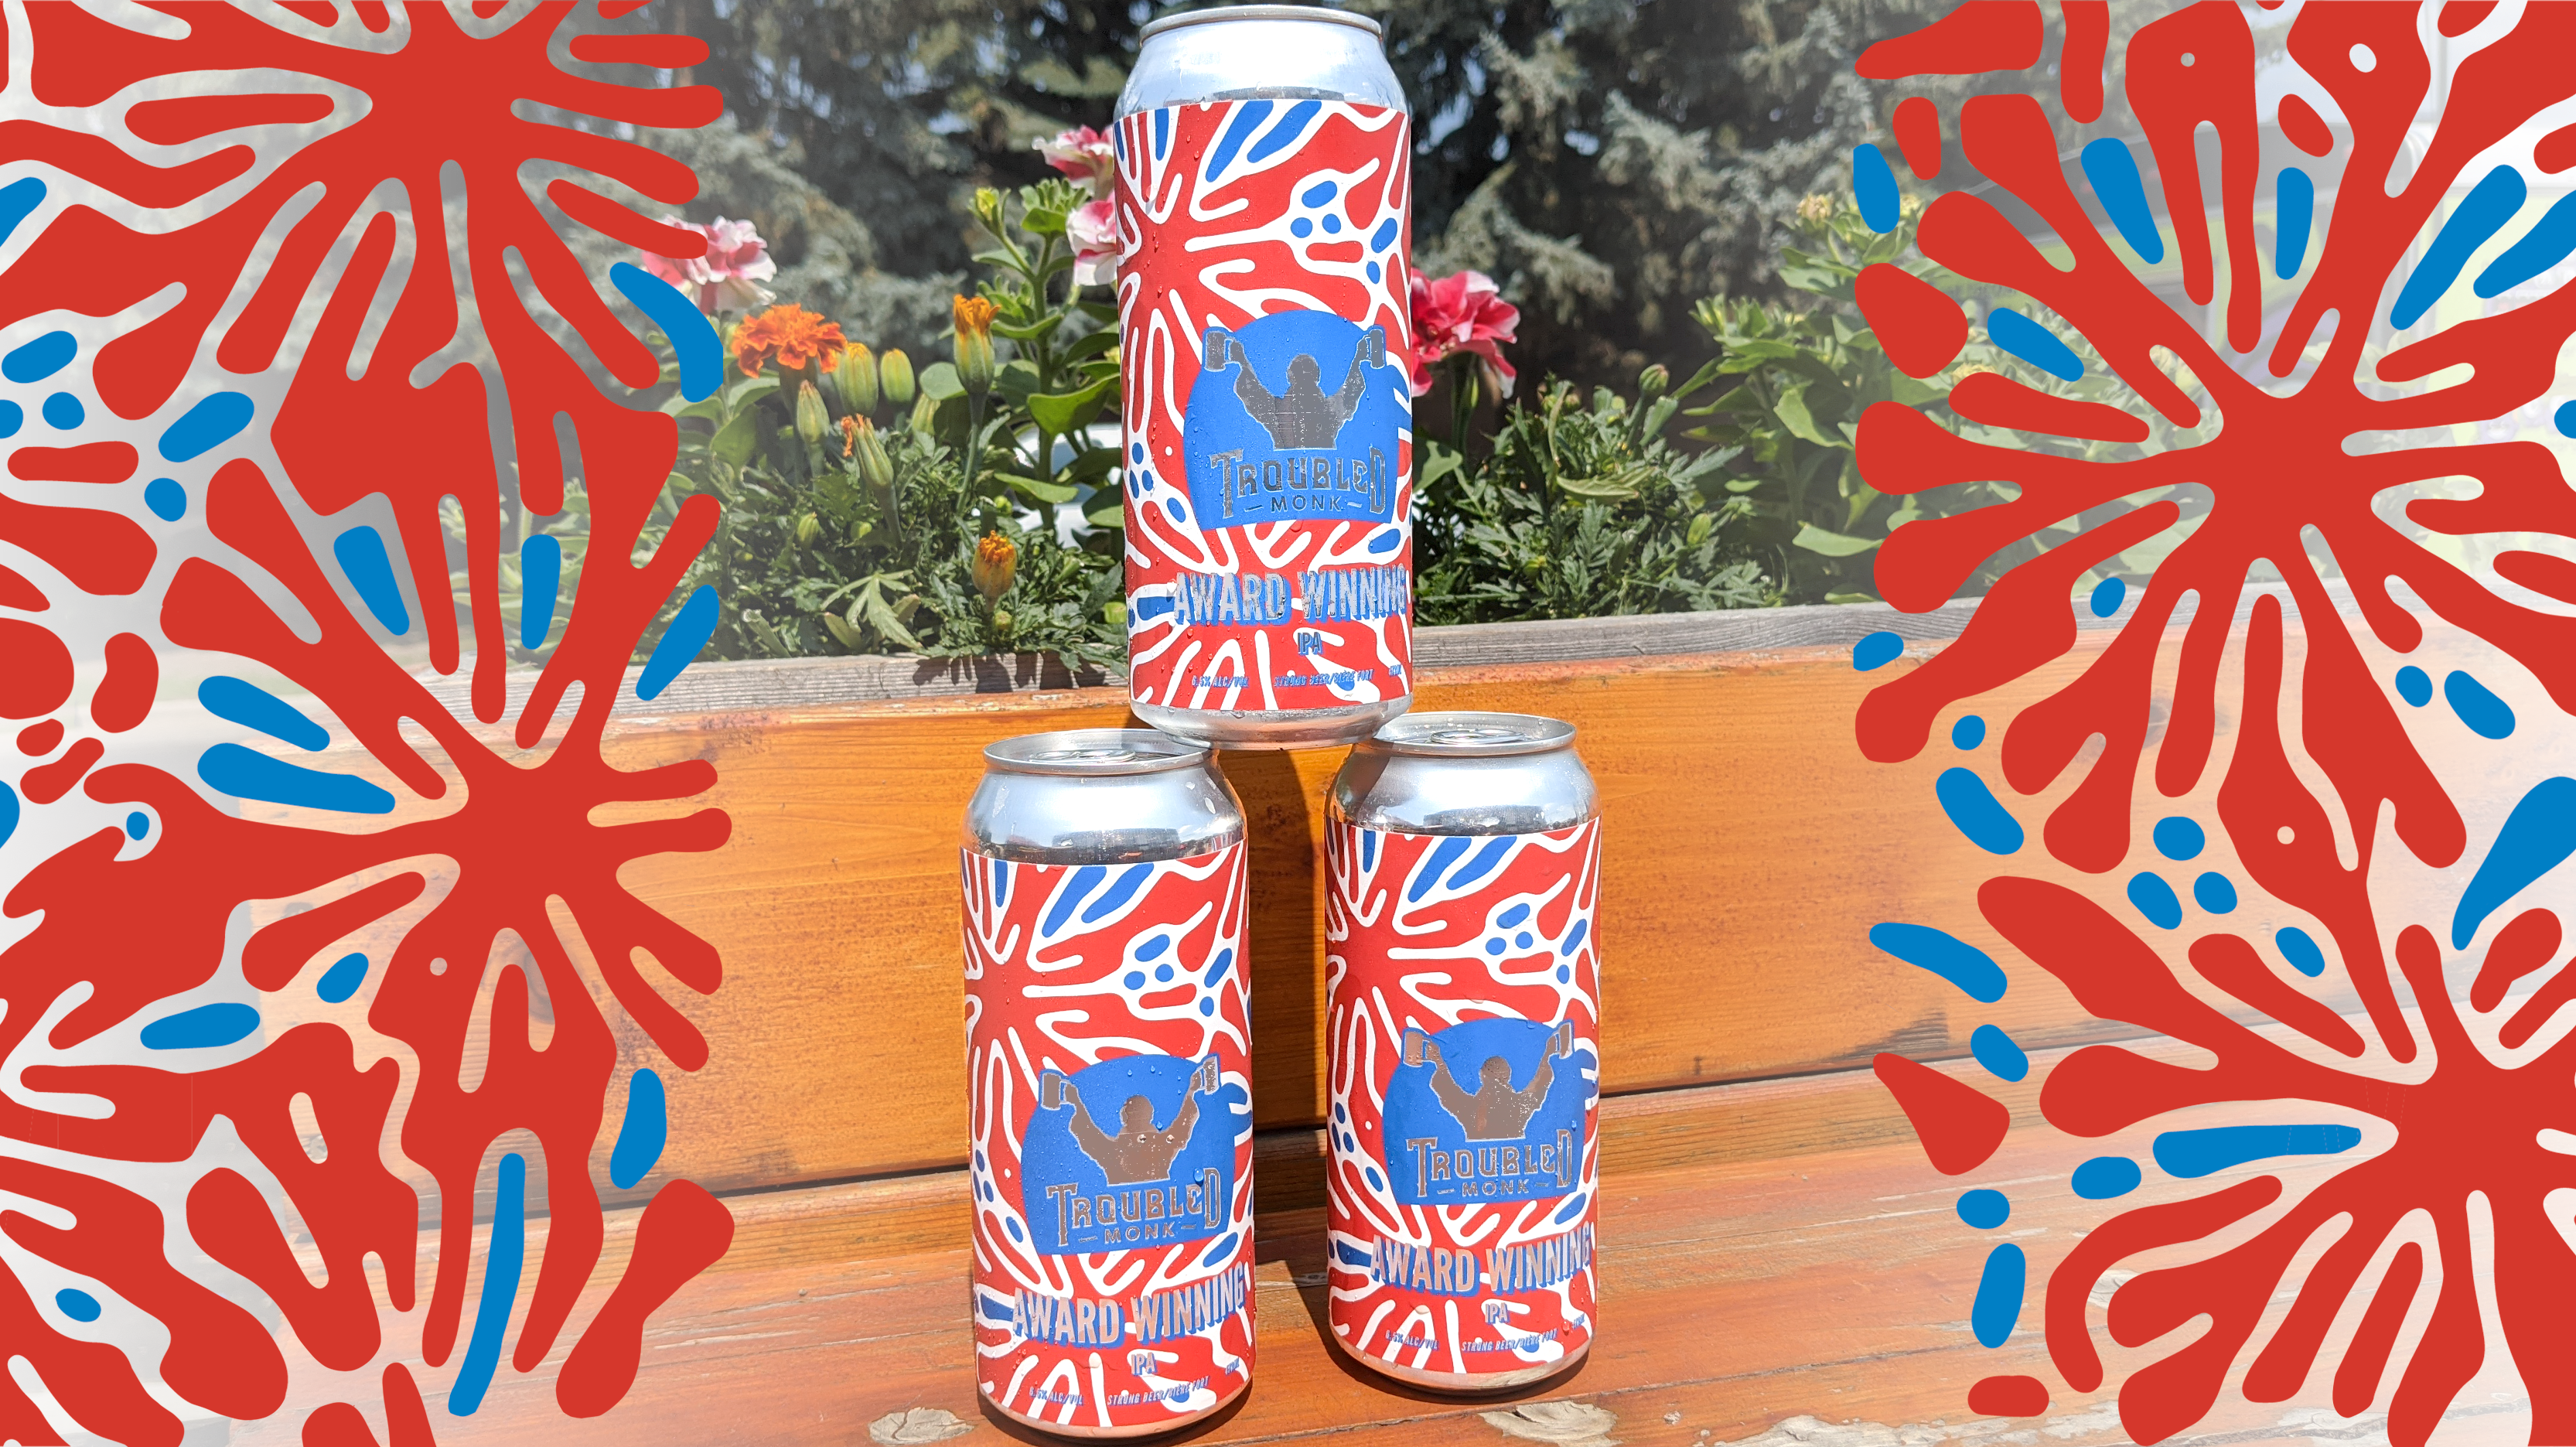 a picture of three cans of troubled monk award winning hazy ipa sitting on the patio with flowers behind. The can is blue and red and blue and red graphics frame the three can stack.